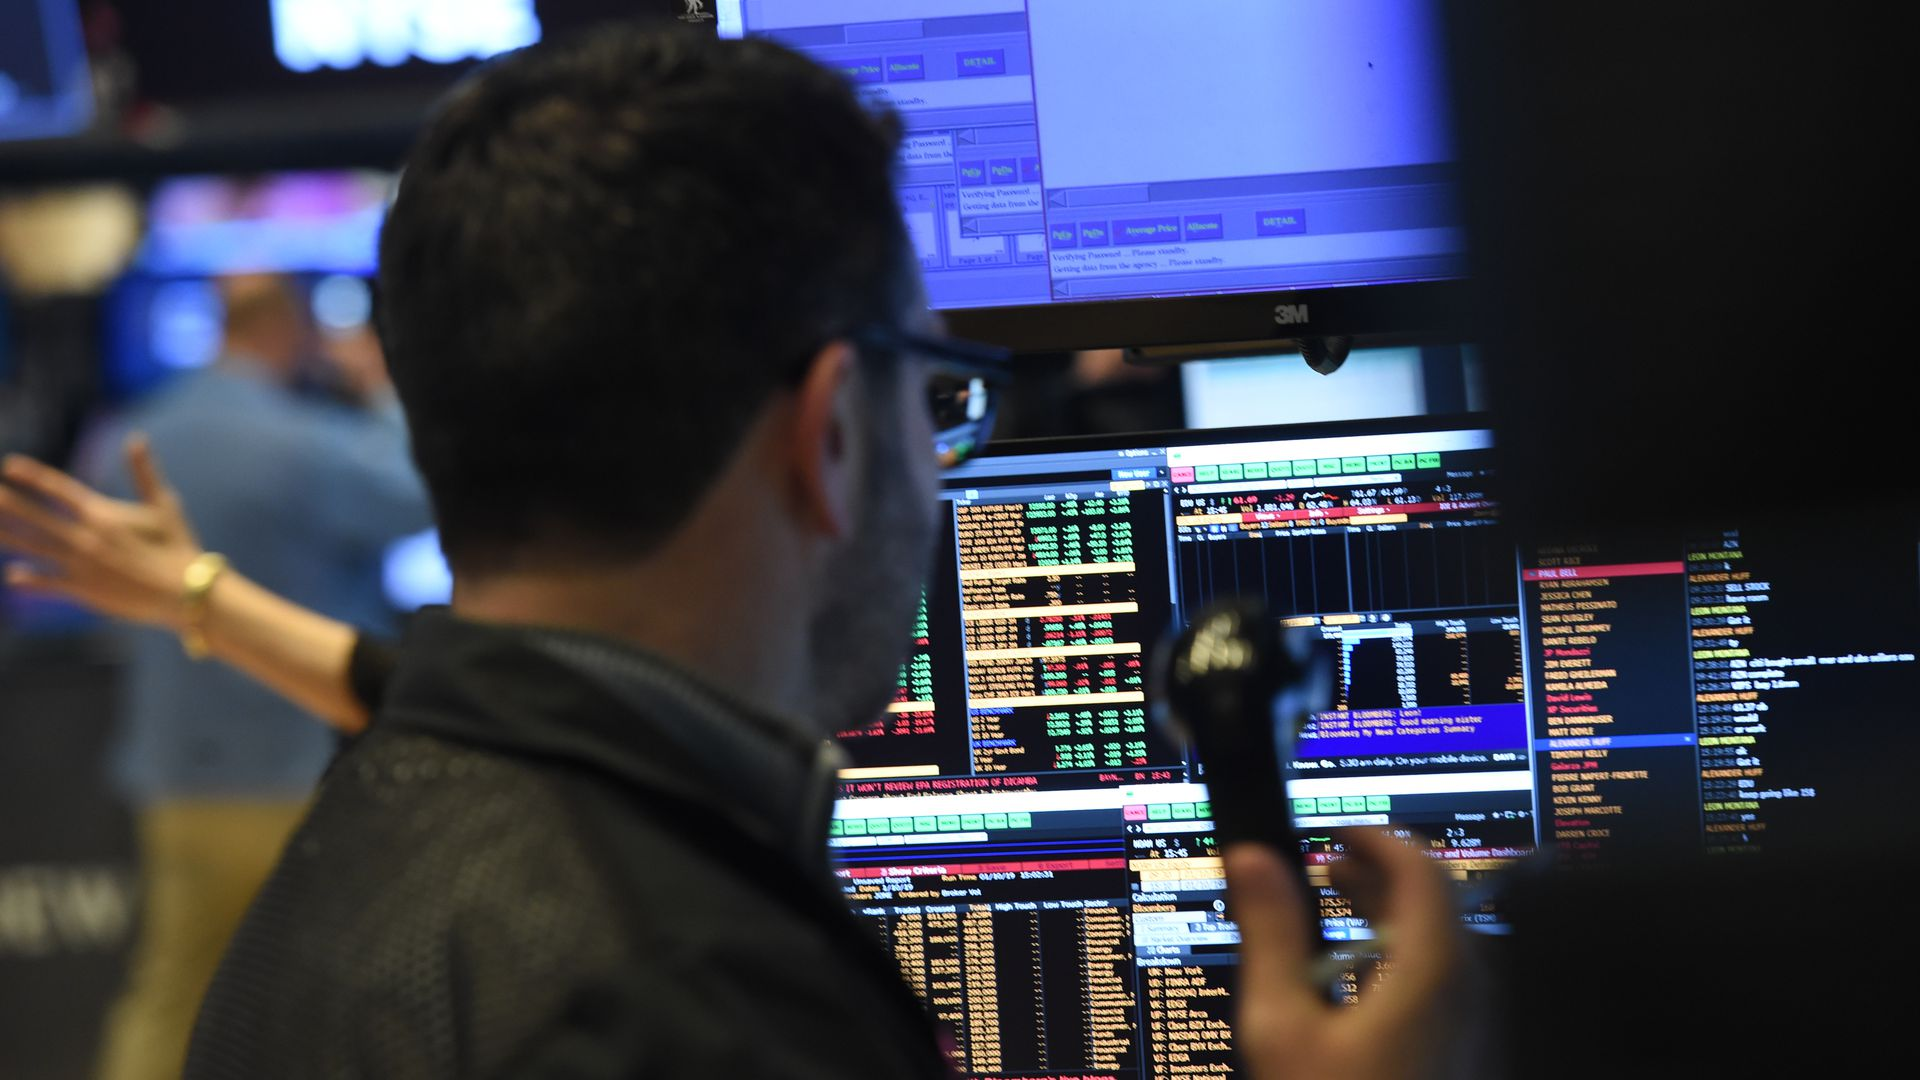 In this image, a broker at the New York Stock Exchange stands with a telephone in front of screens.